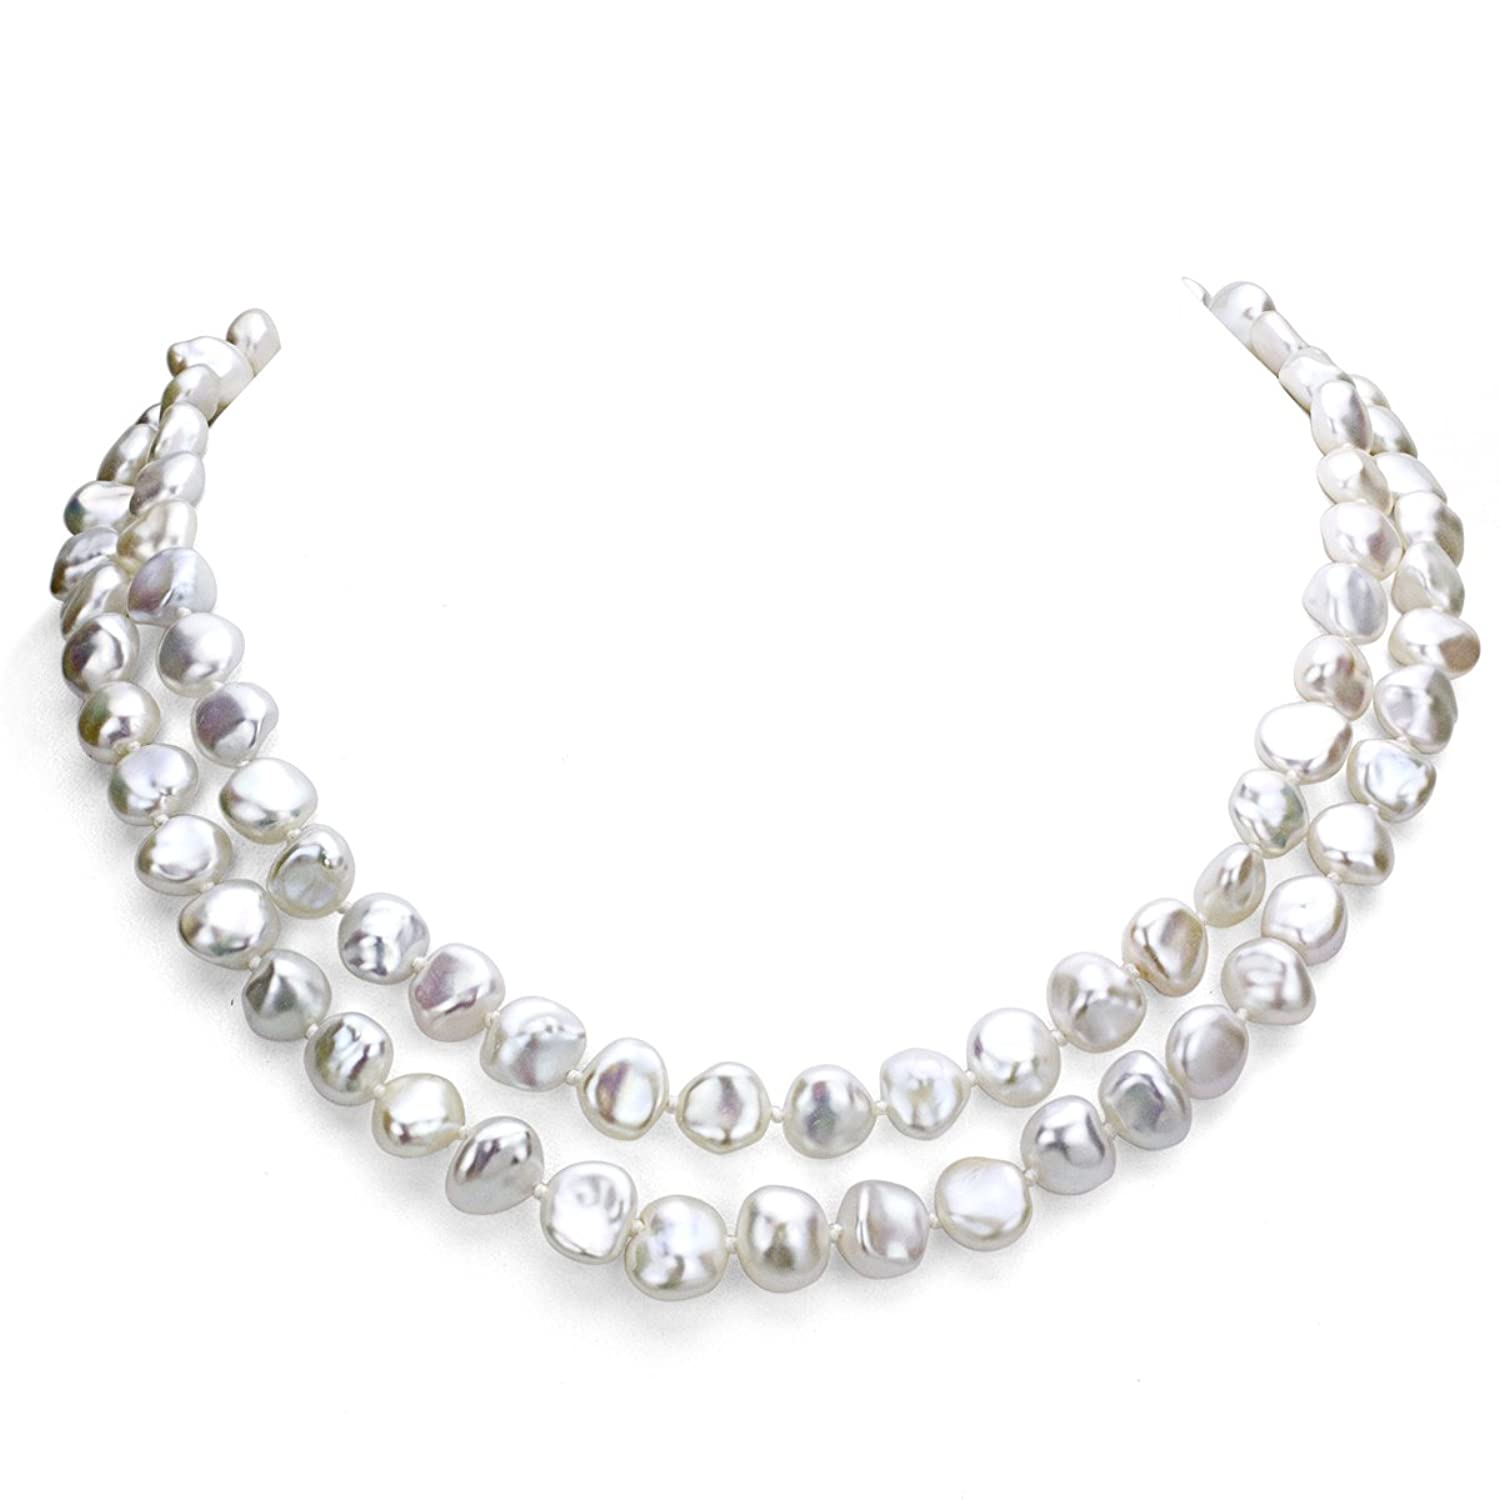 9-9.5mm White Off Shape Keshi Cultured Pearl Endless Necklace, 36""